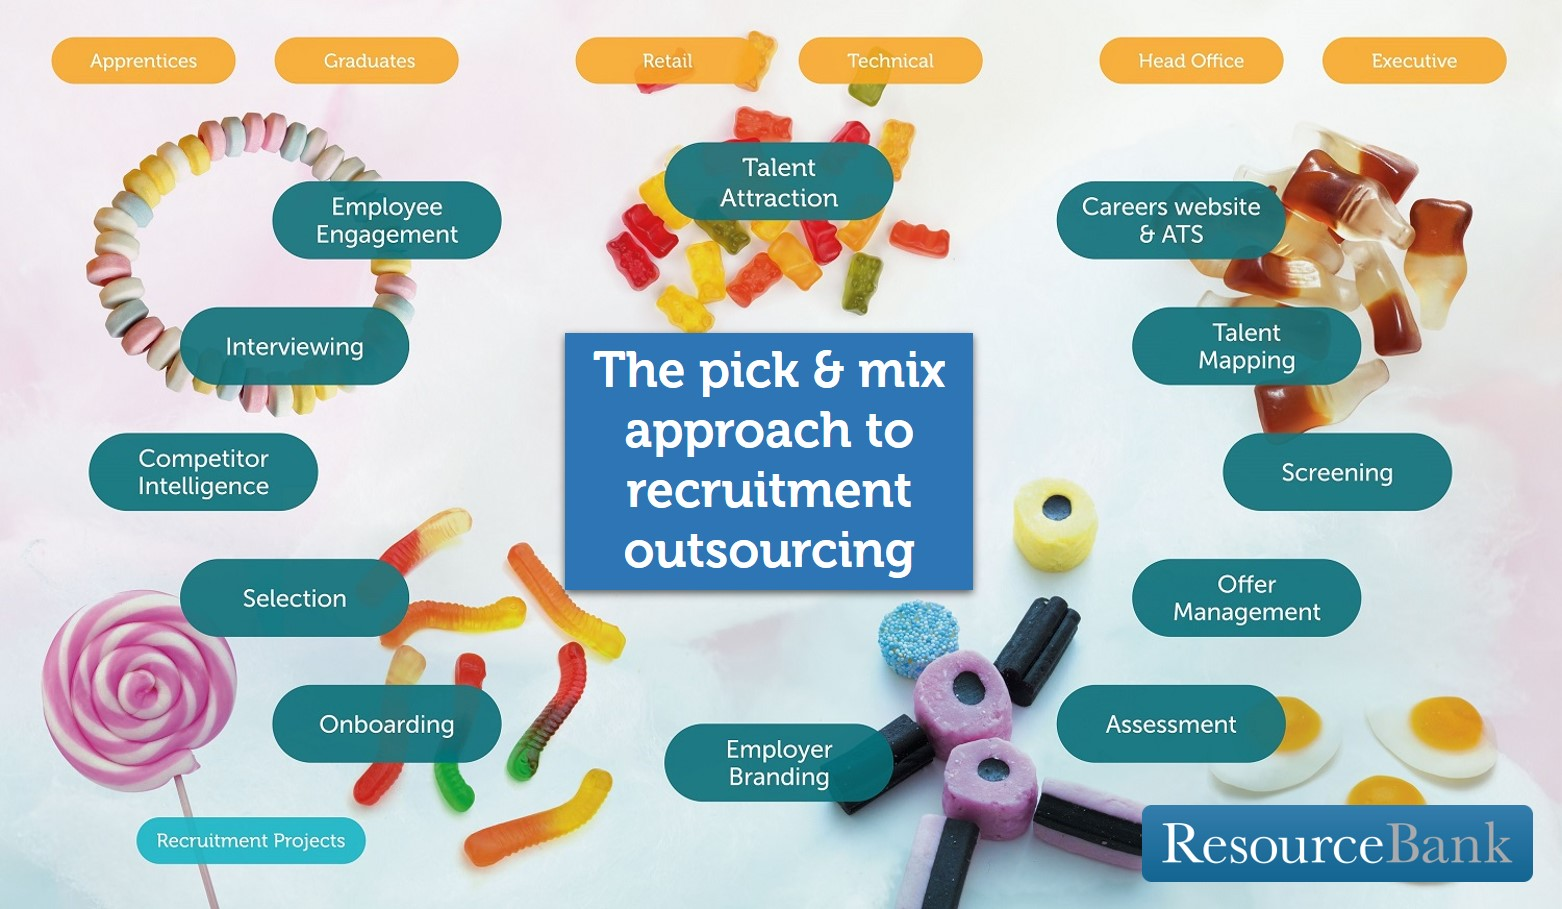 ResourceBank pick and mix image